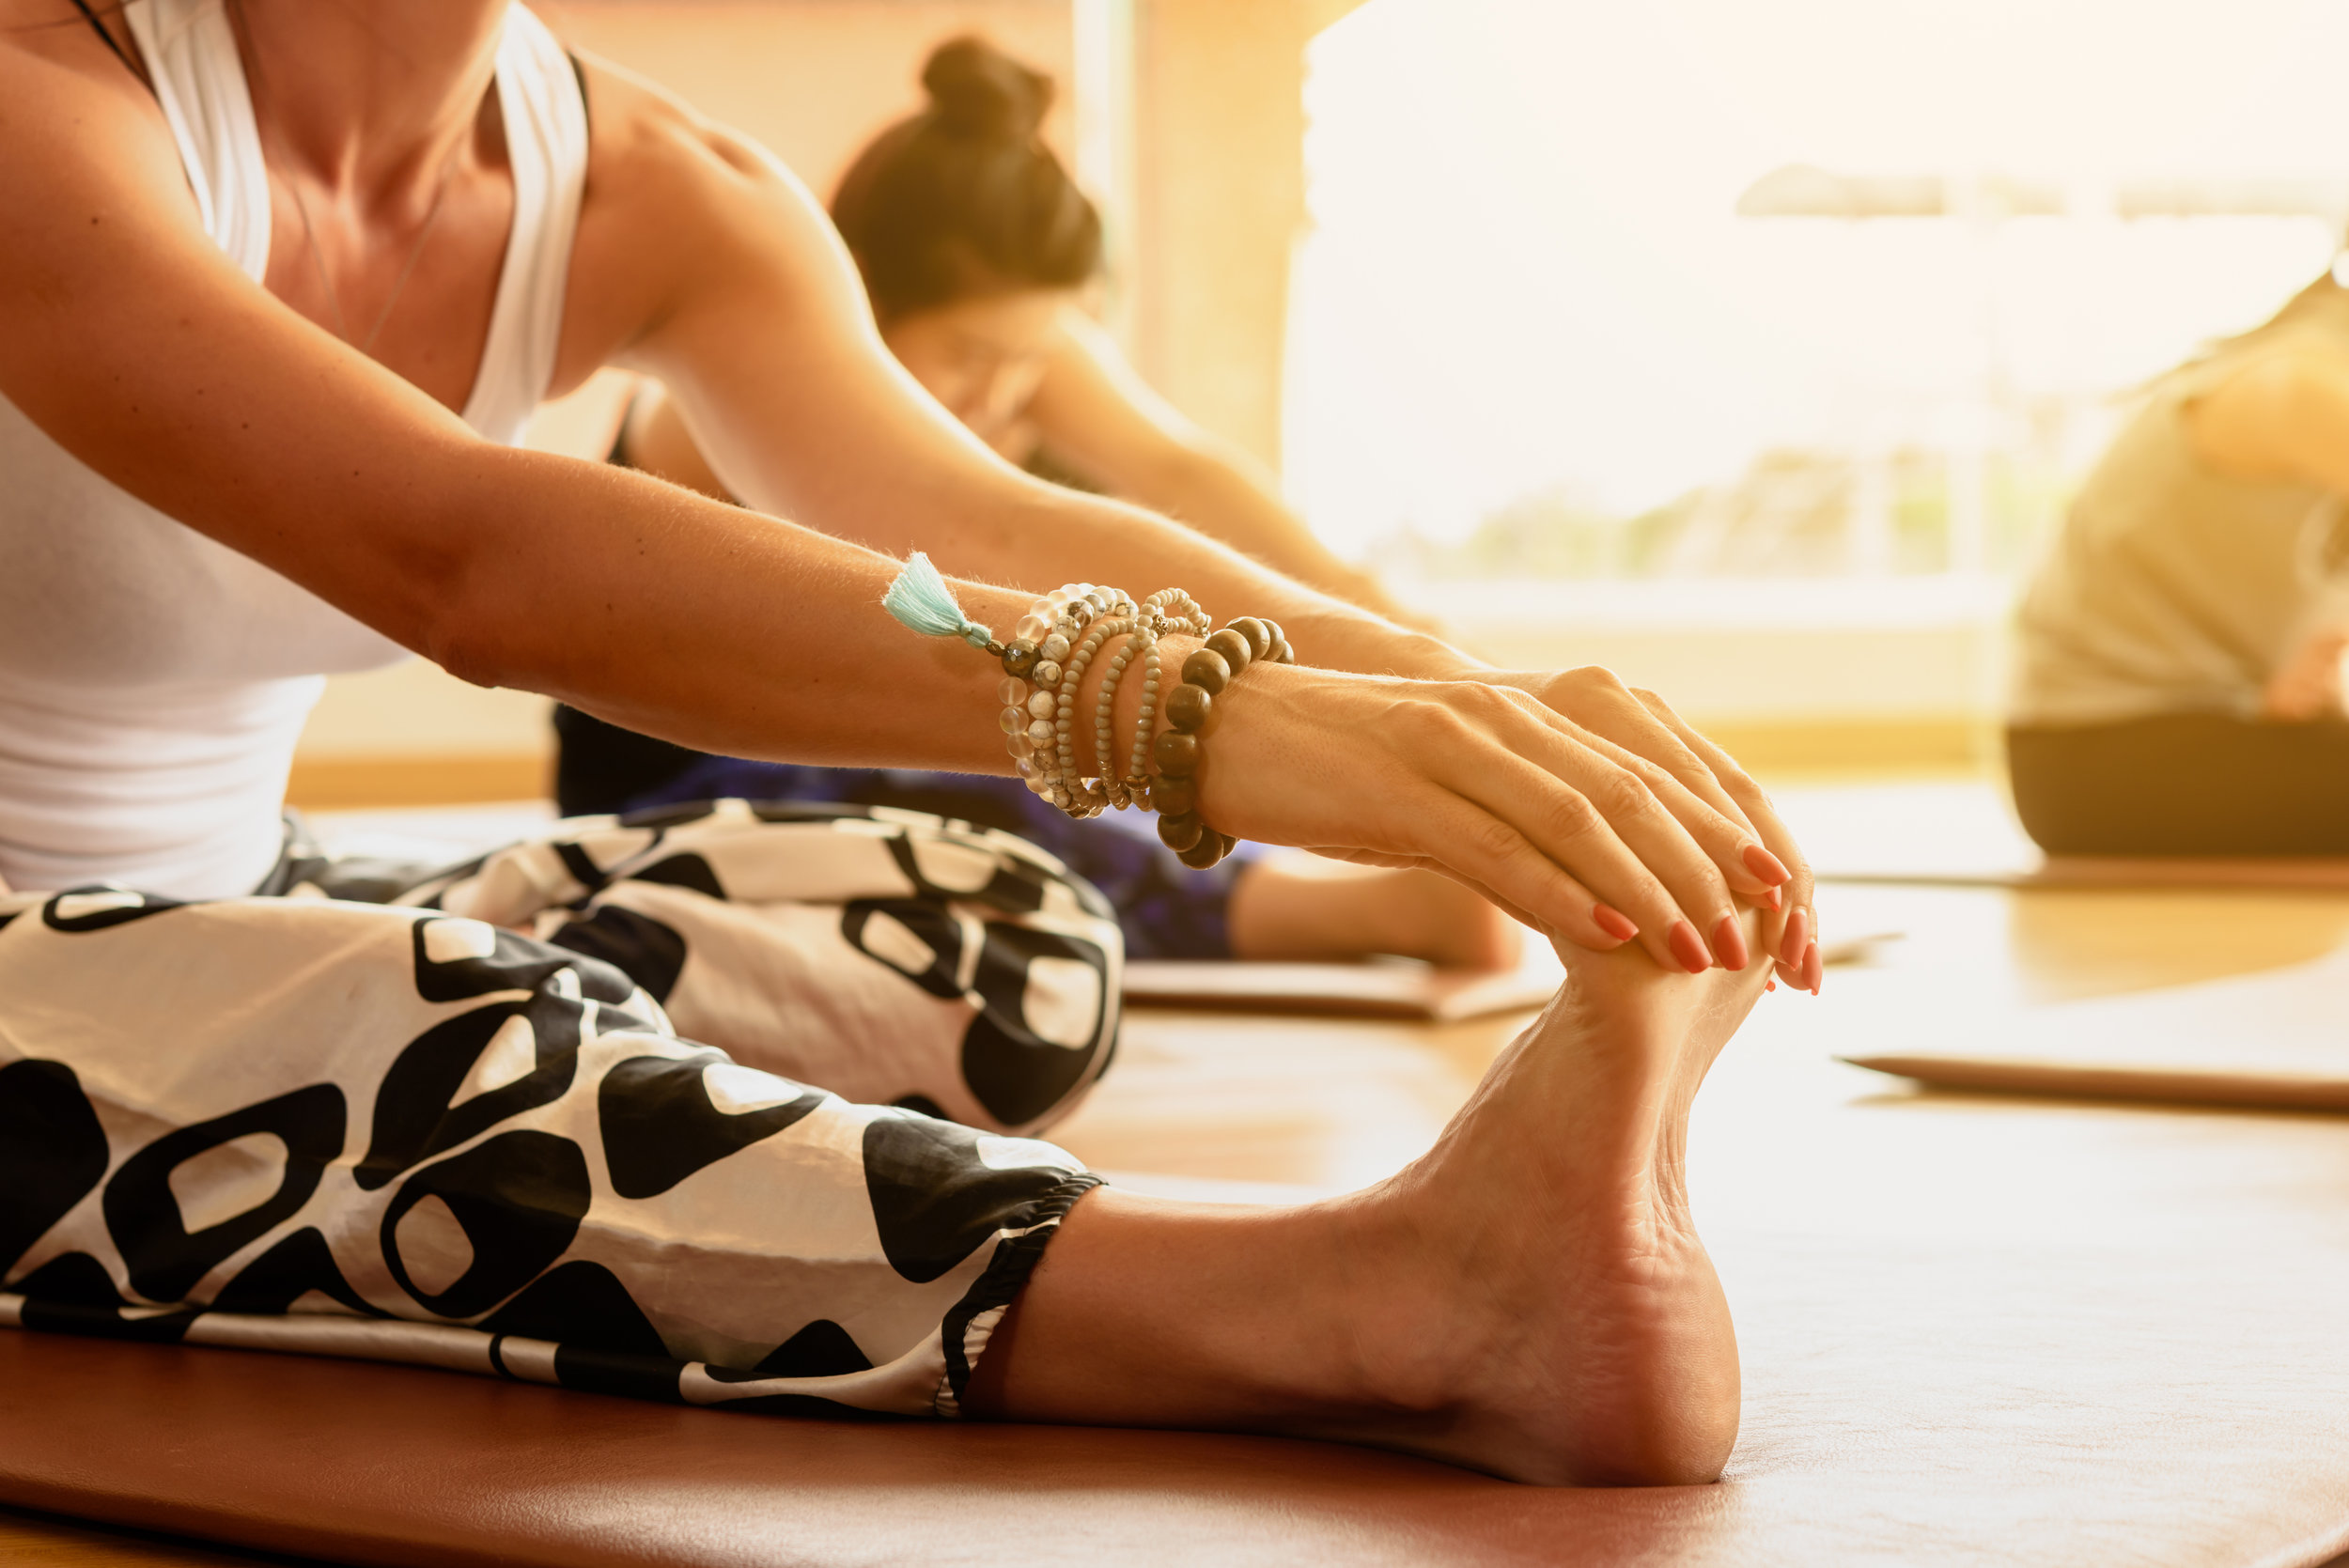 Become a certified 200-hour yoga instructor! - My 9-month program begins in September 2019 at Central Mass Yoga & Wellness